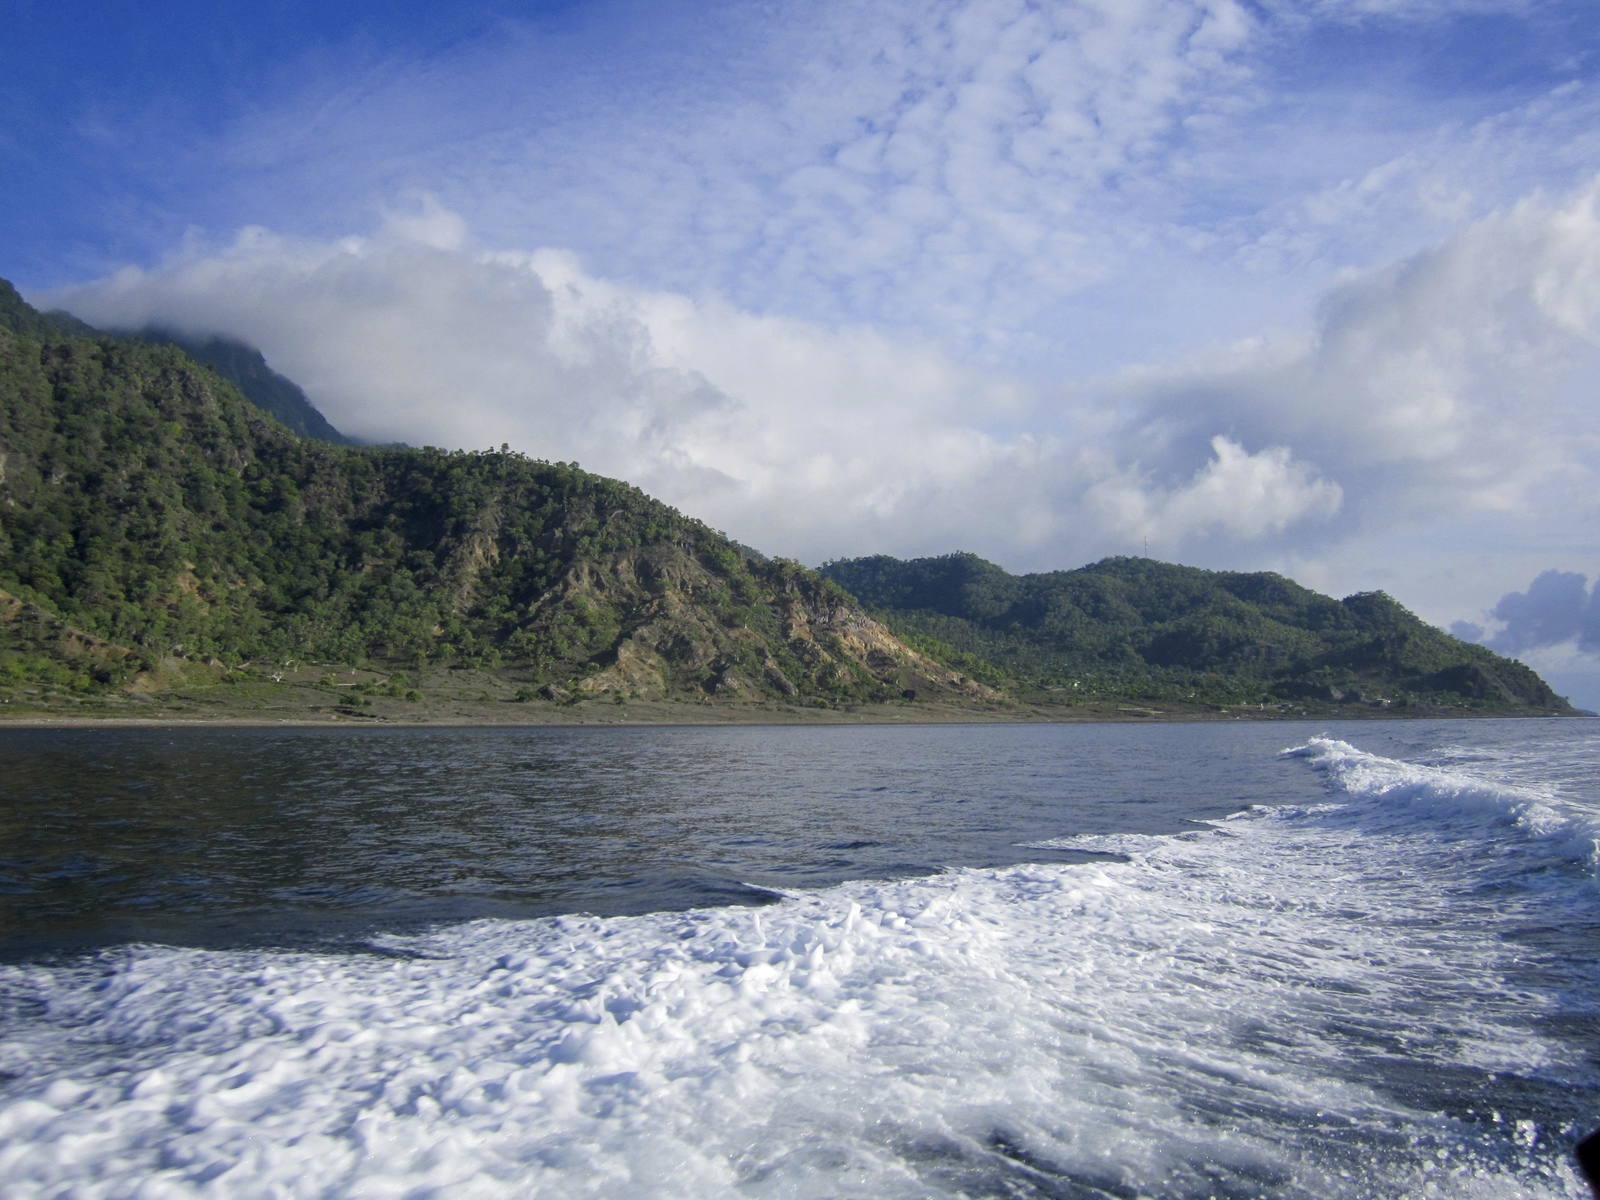 Leaving Atauro Island on speedboat. Photo copyright: Conservation International/Photo by Tracy Farrell.